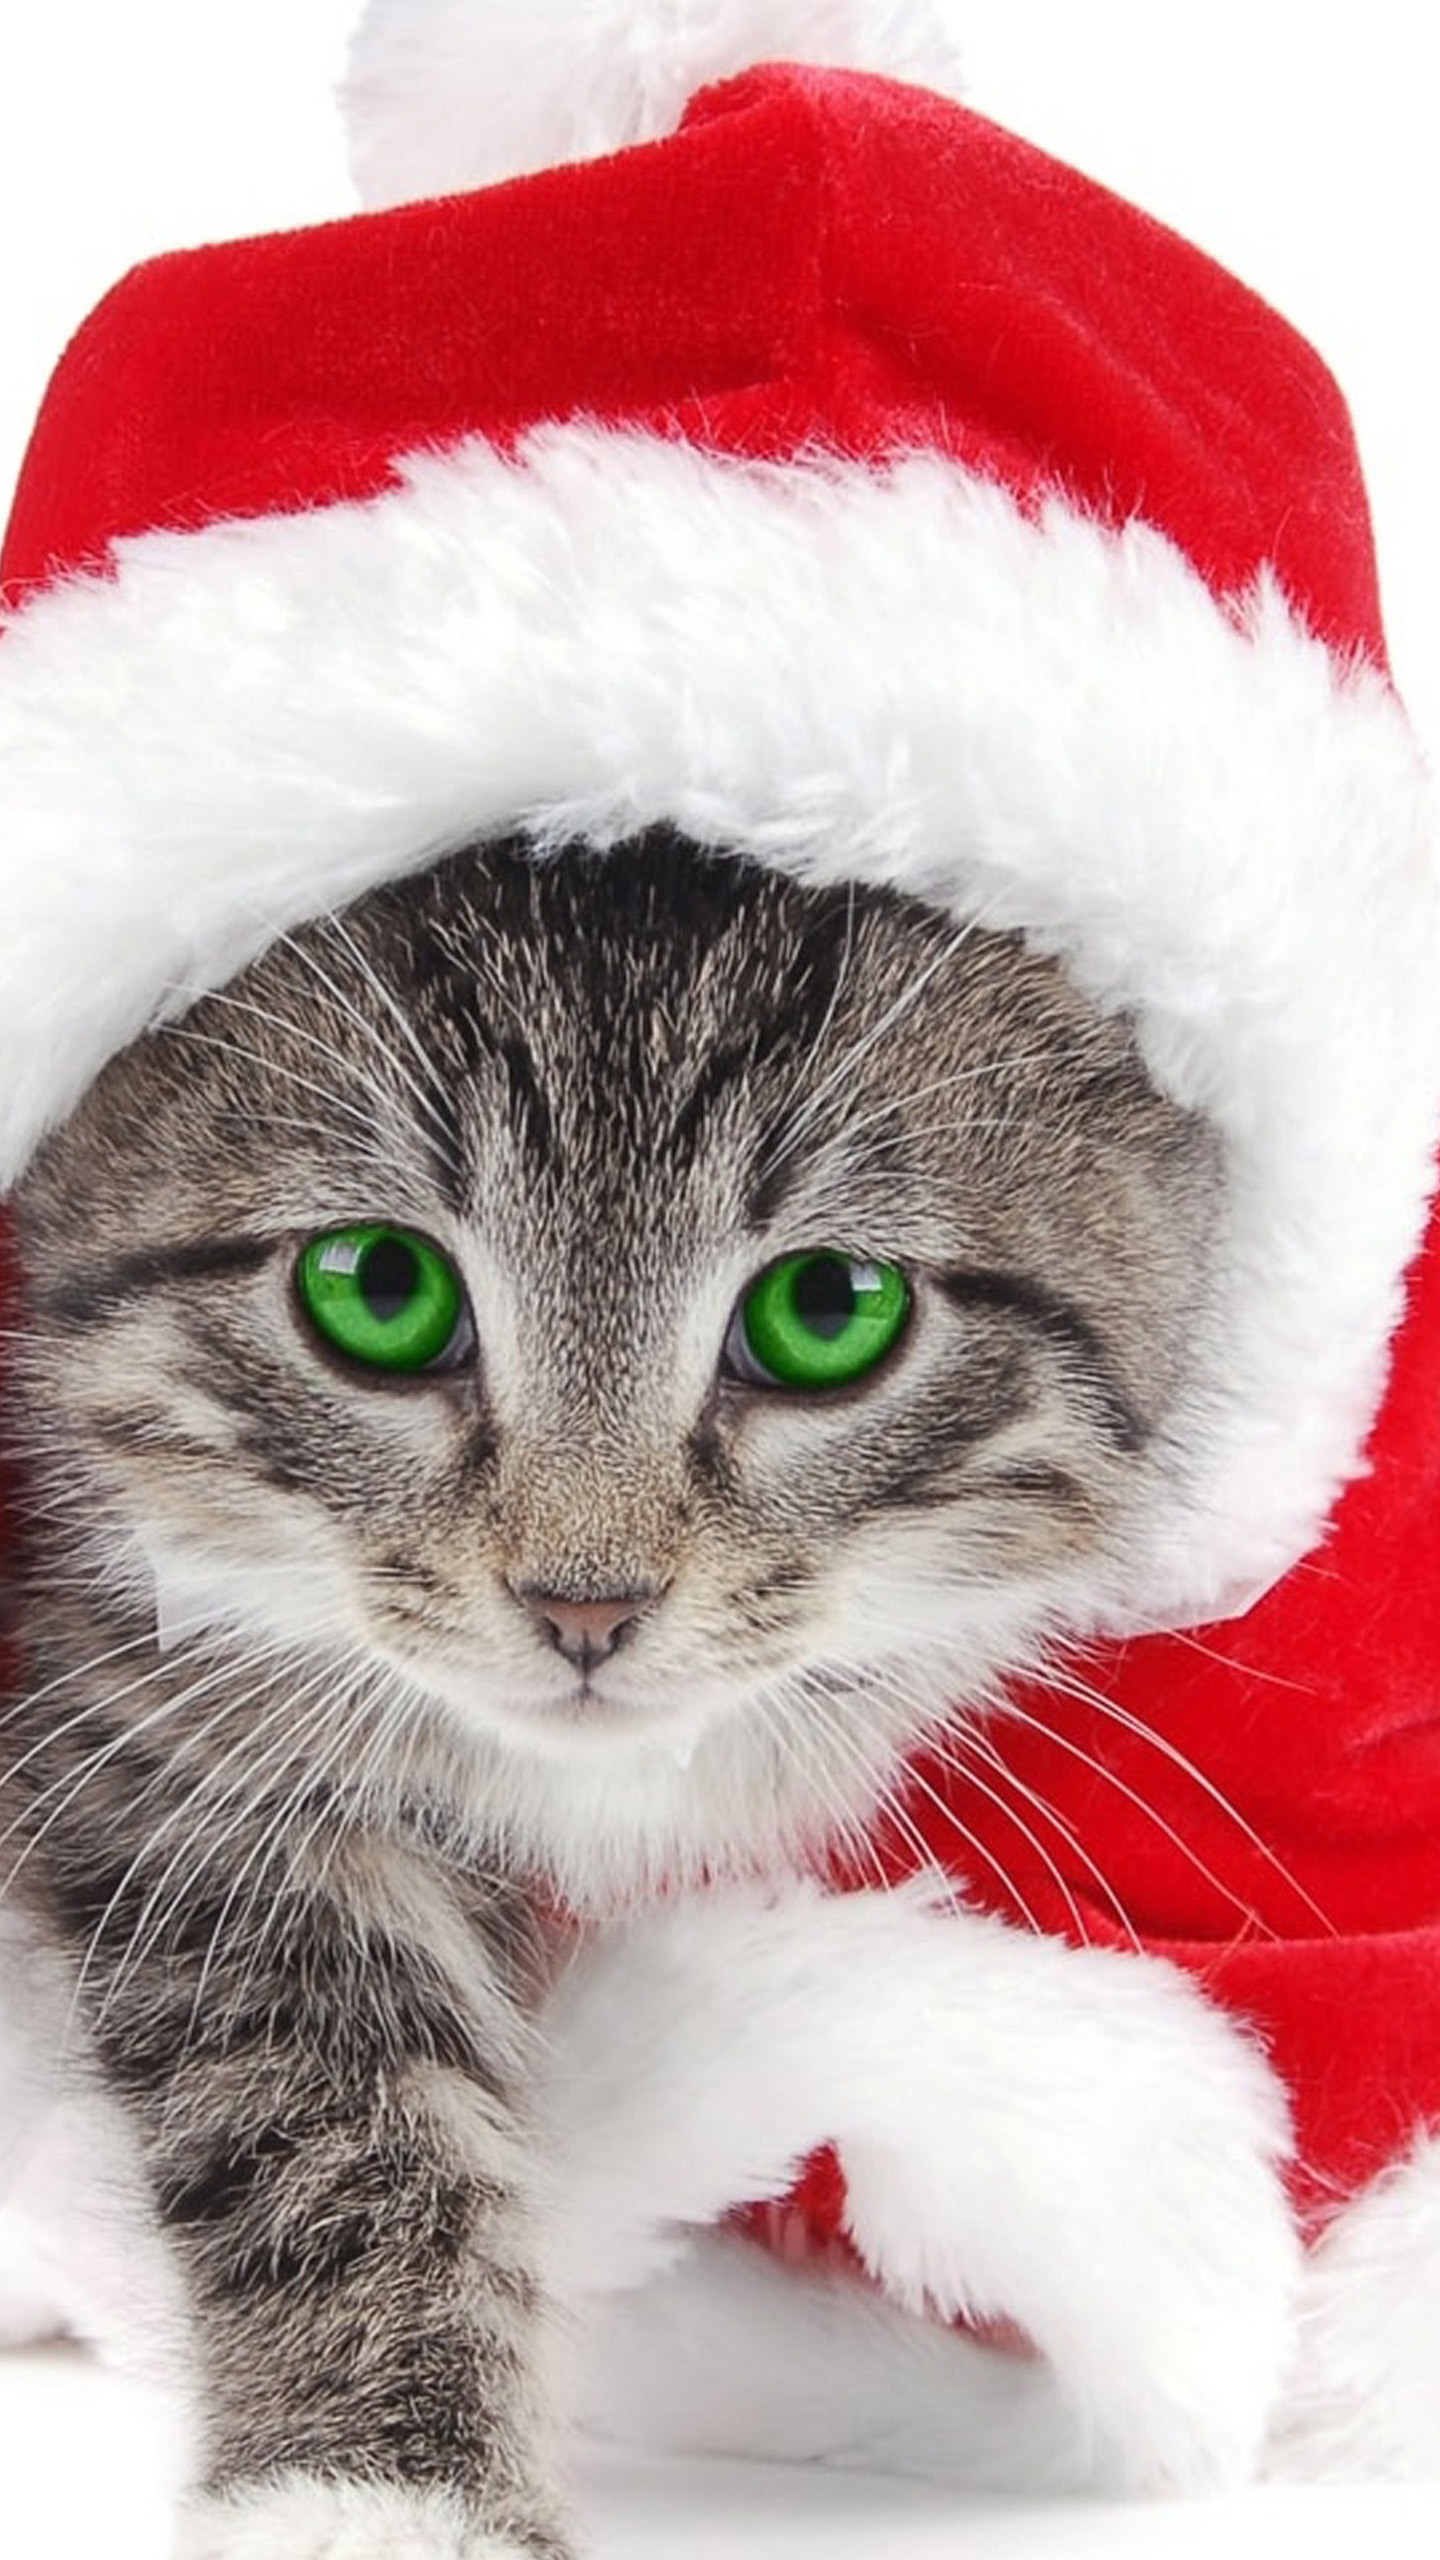 Cute And Adorable Wallpapers Christmas Cat Wallpaper 75 Images